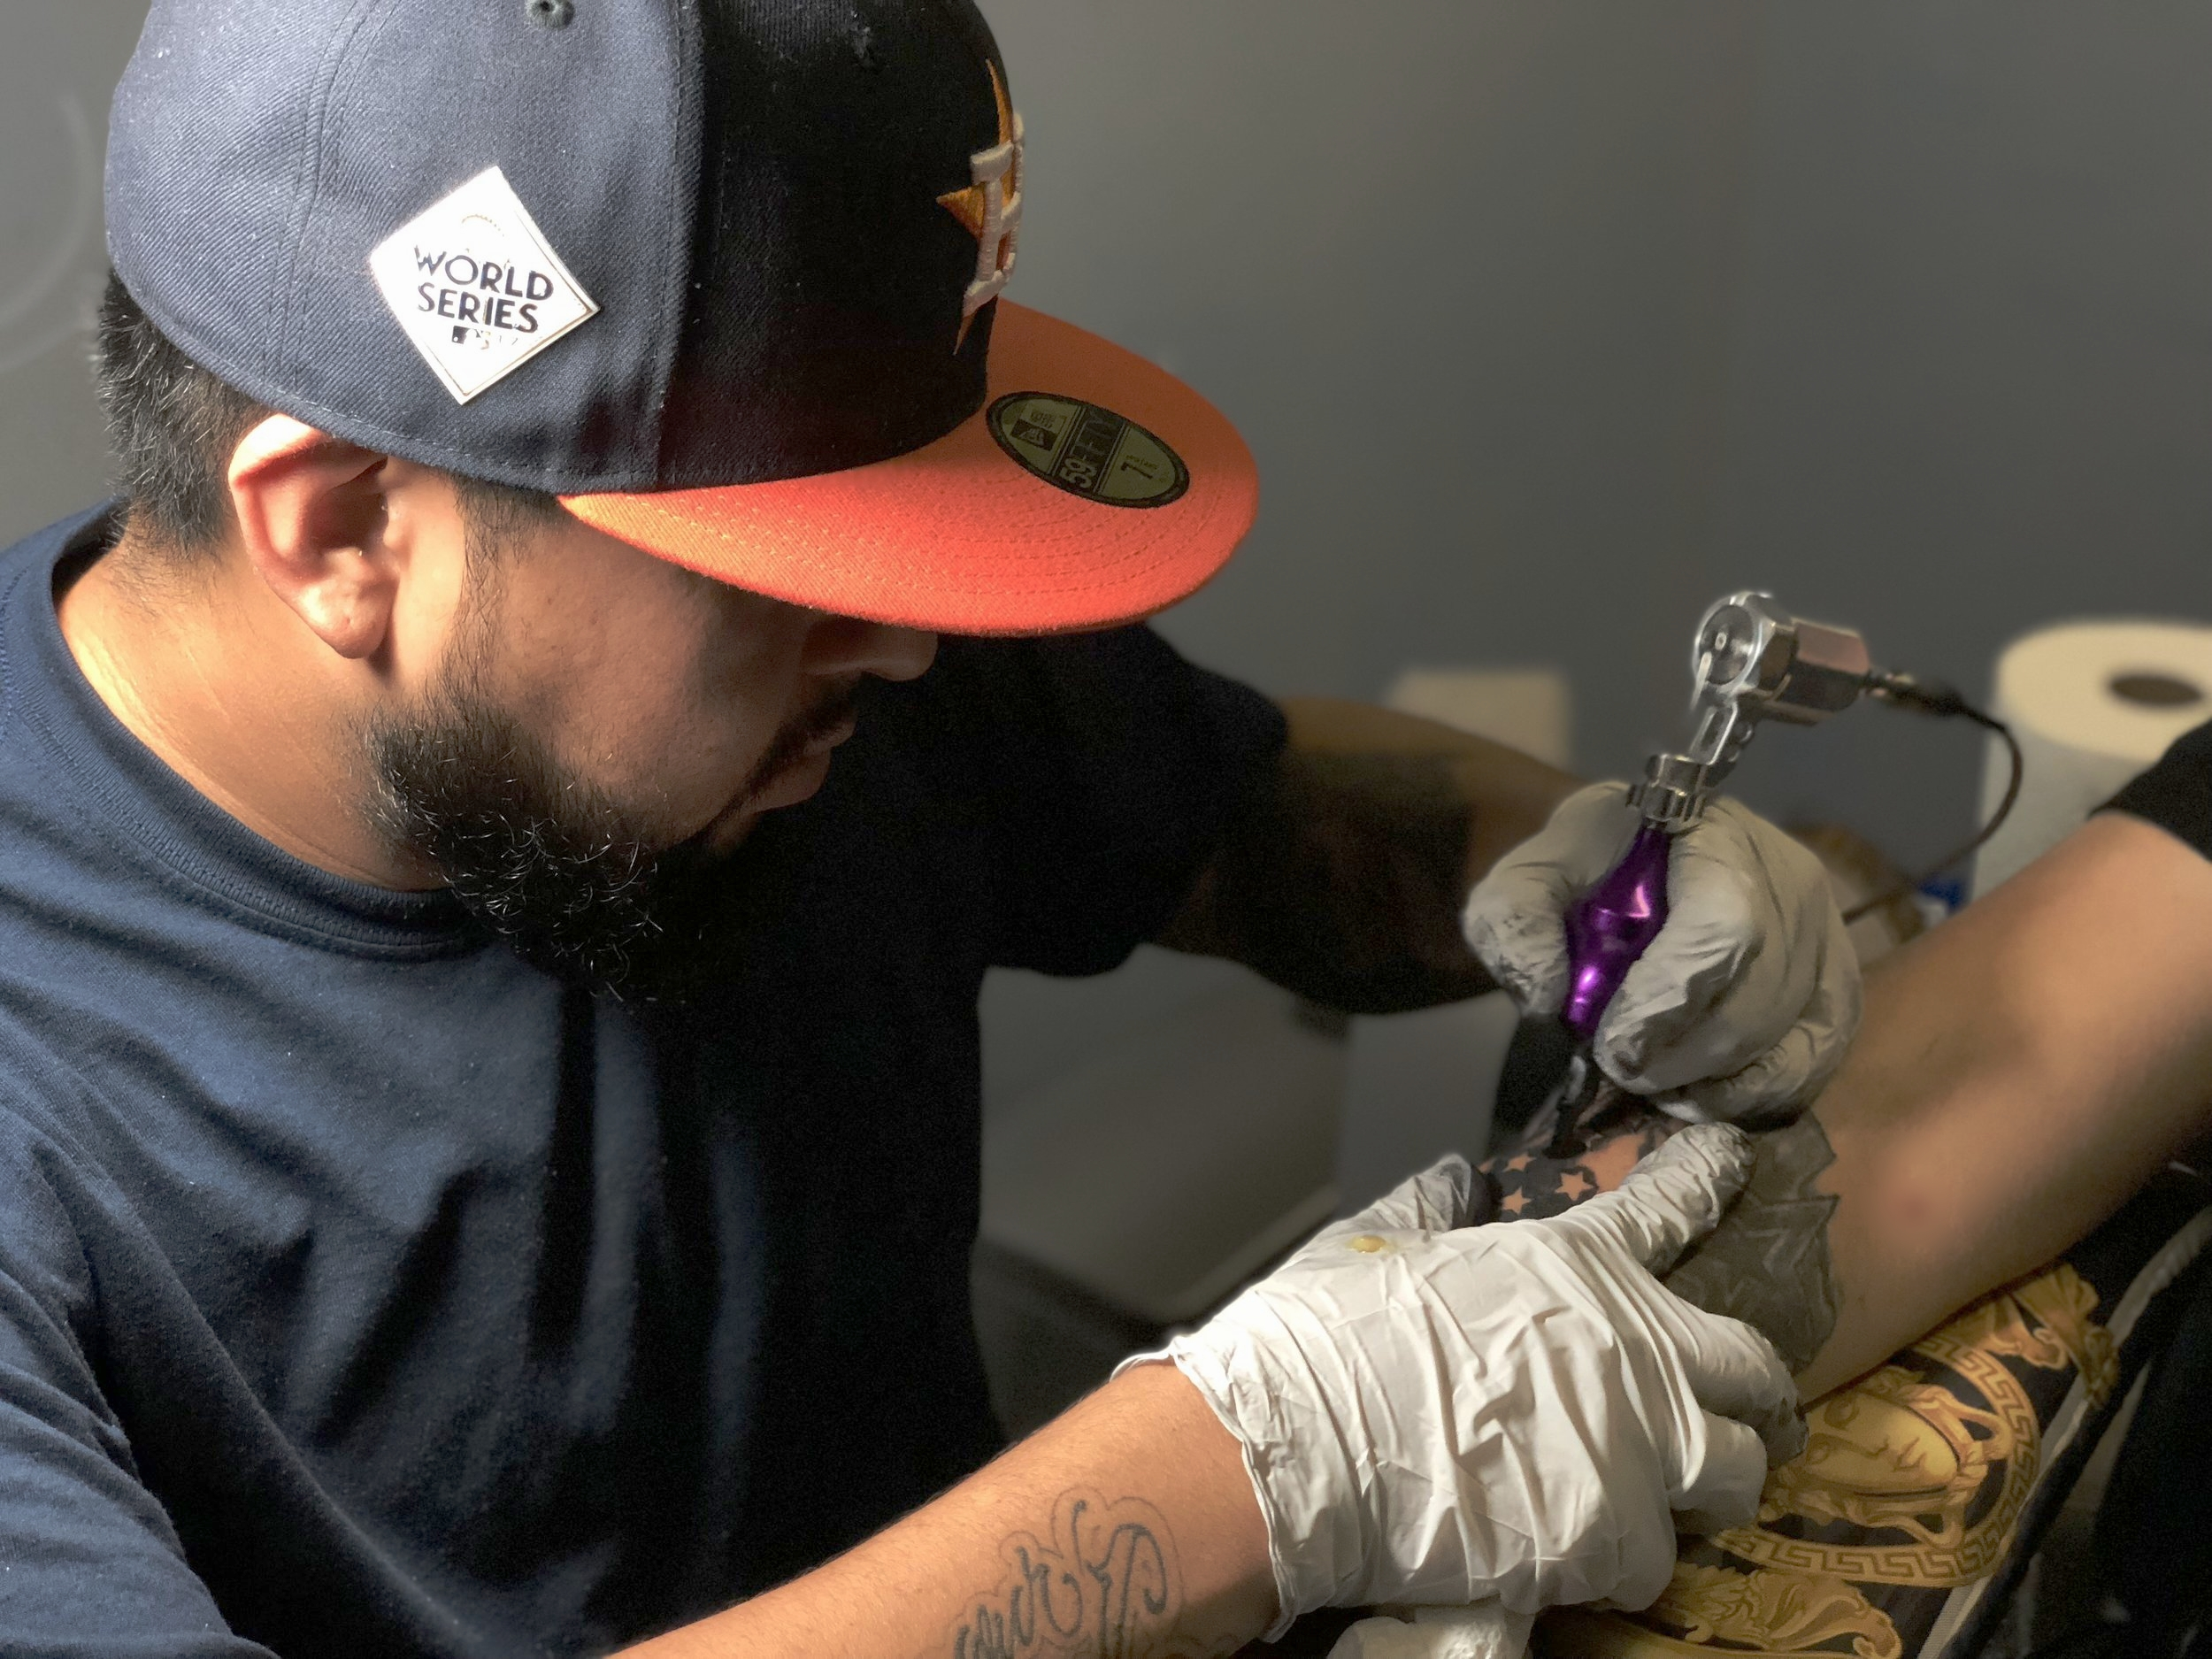 Rey Garcia - Rey is an artist out of Houston, Texas. He has been tattooing professionally for about 3 years. Rey specializes in script and black and gray realism, considers himself a pretty versatile artist and can do it all. Click on his photo to check out his work!